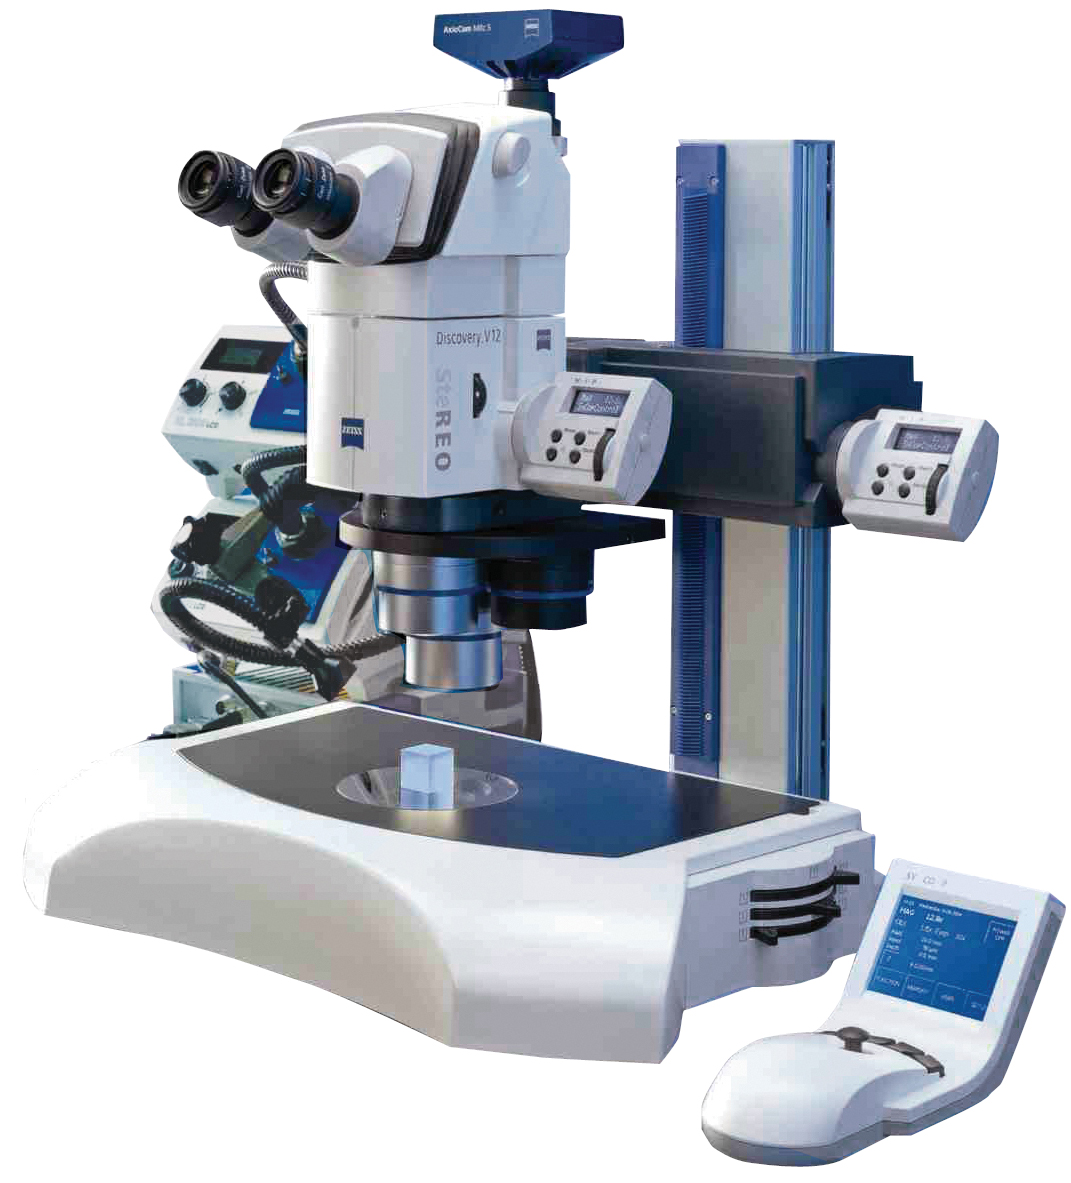 Discovery Series V12 Stereomicroscopes